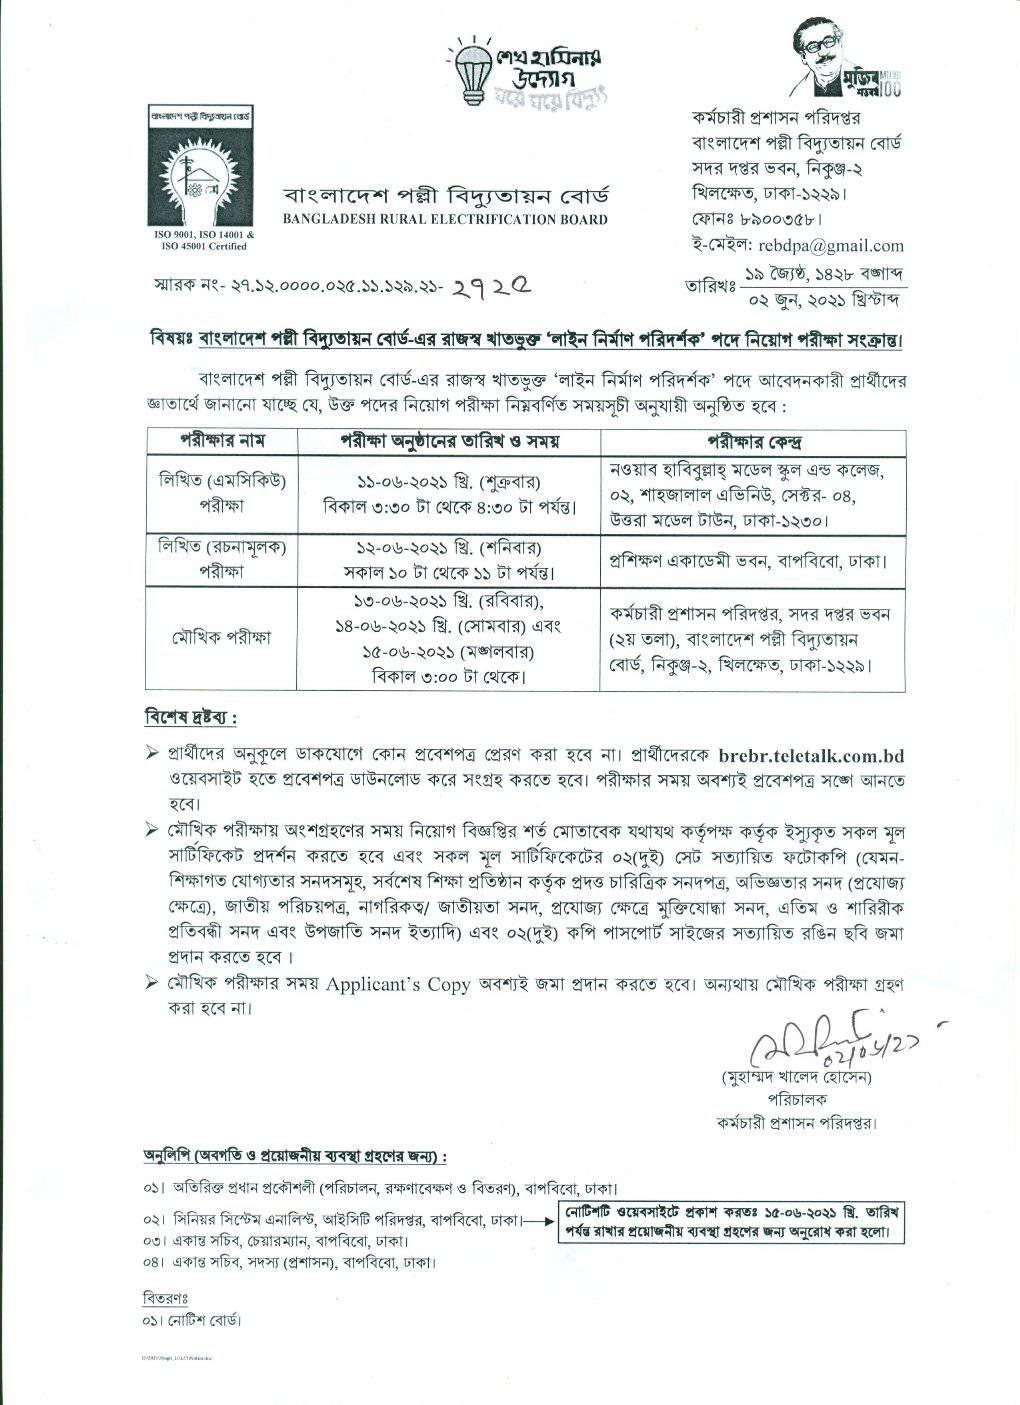 Rural Electrification Board MCQ exam date and Seat plan 2021